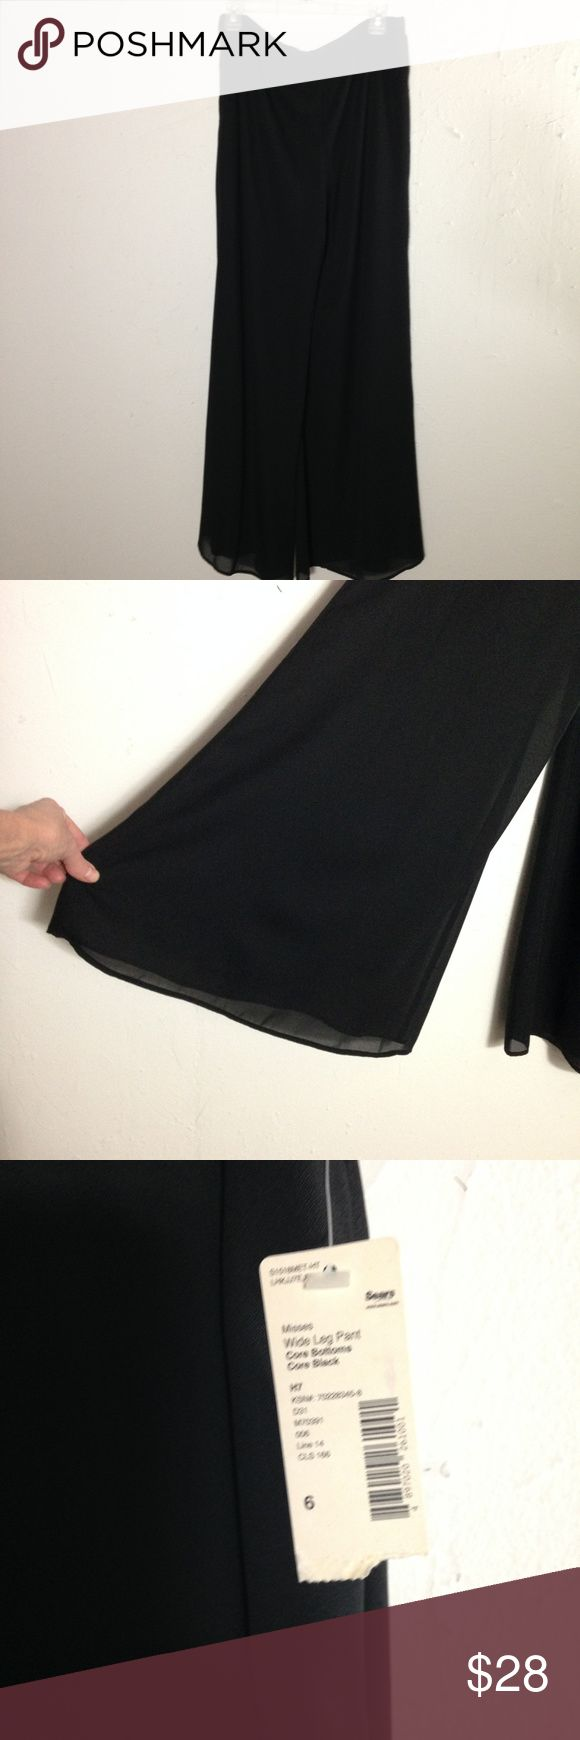 NWT black chiffon palazzo pants for evening. Metaphor black polyester pants with a chiffon overlay. Side zip with elastic back waist band. Measure 32 inches from waist to hem and the leg width is 22 inches seam to seam. Metaphor Pants Wide Leg